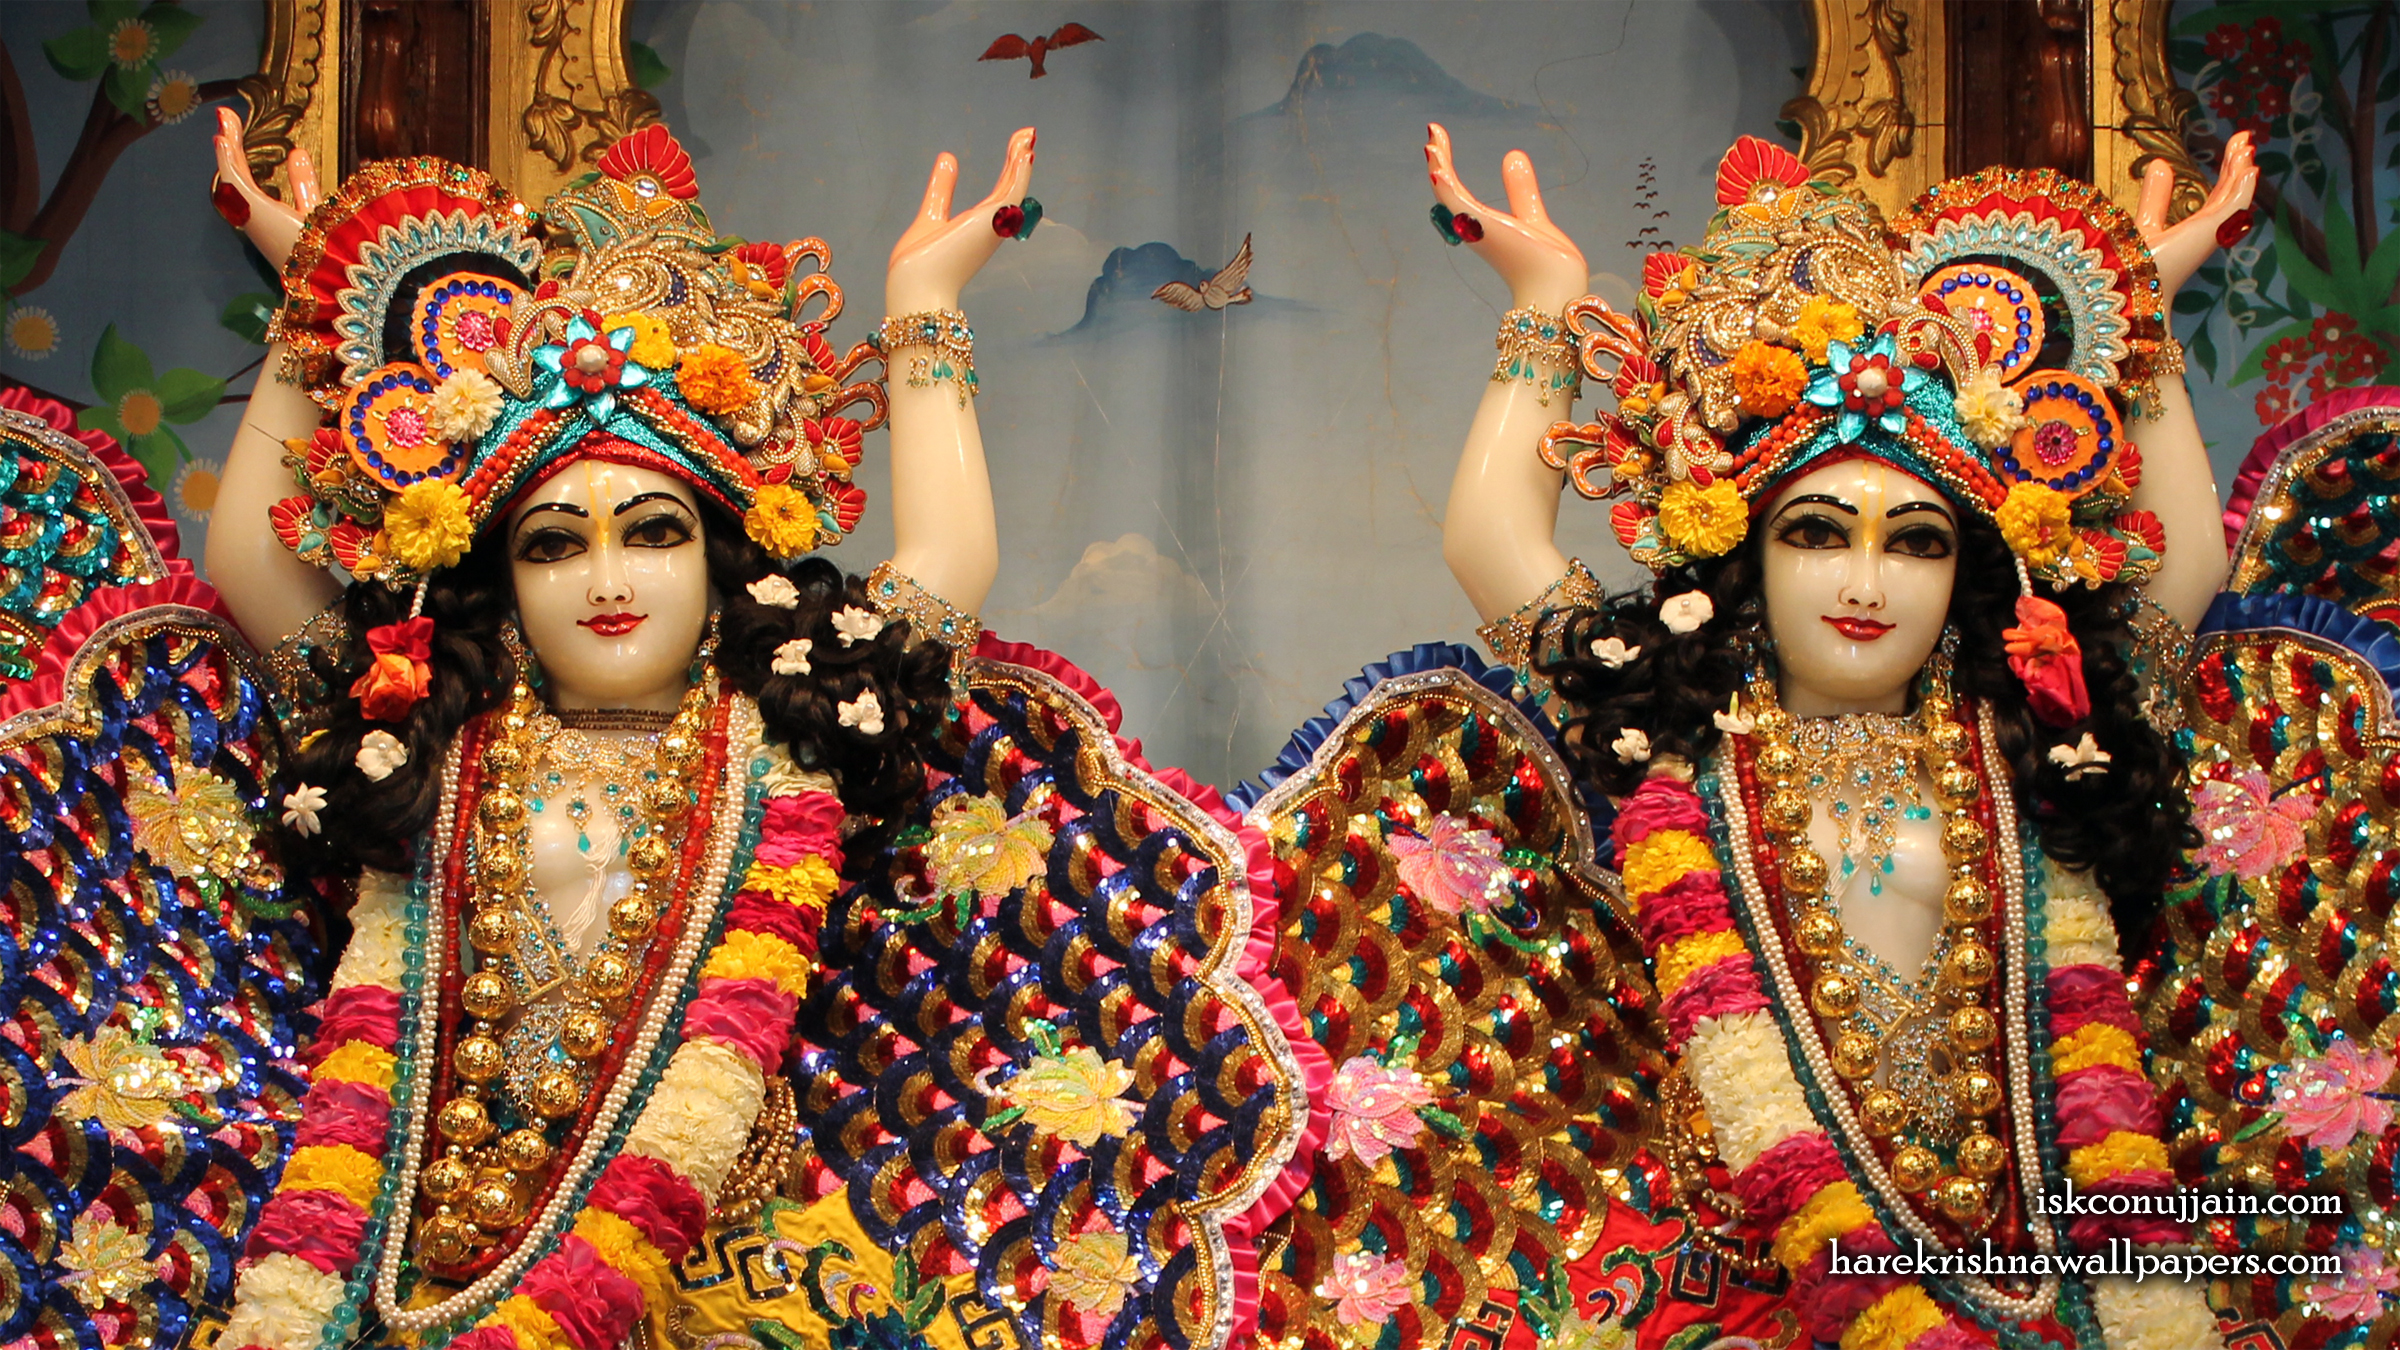 Sri Sri Gaura Nitai Close up Wallpaper (002) Size 2400x1350 Download